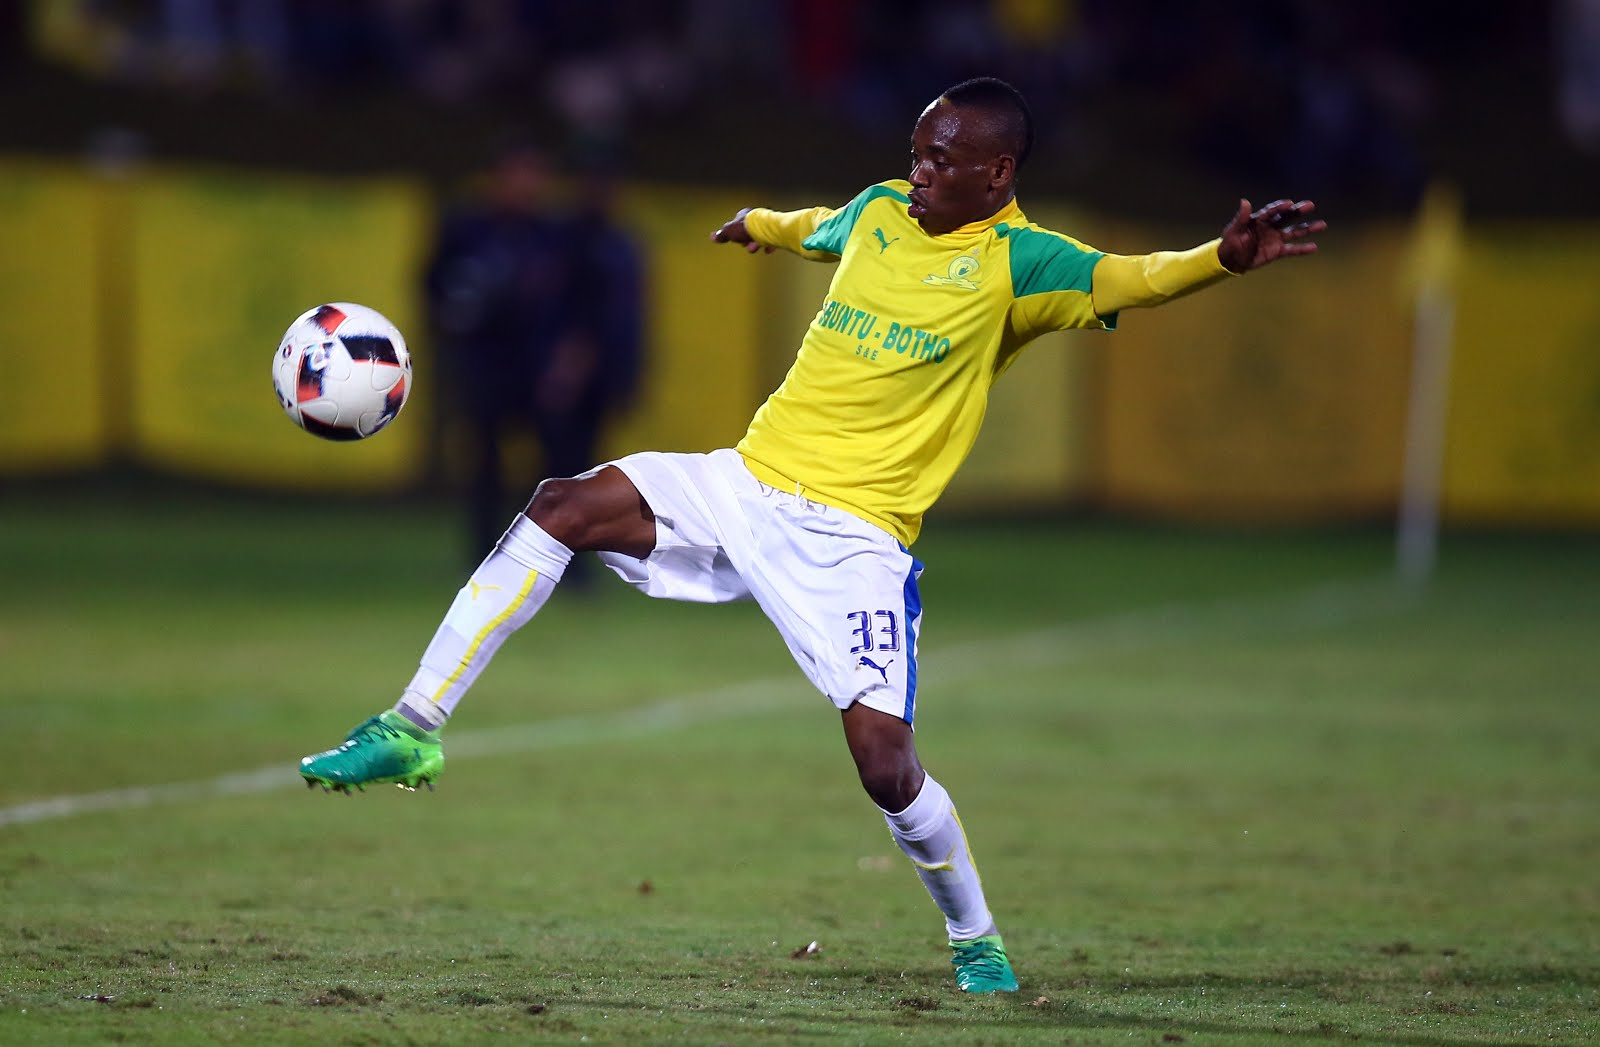 Khama Billiat of Mamelodi Sundowns during the Absa Premiership match between Golden Arrows and Mamelodi Sundowns at Princess Magogo Stadium